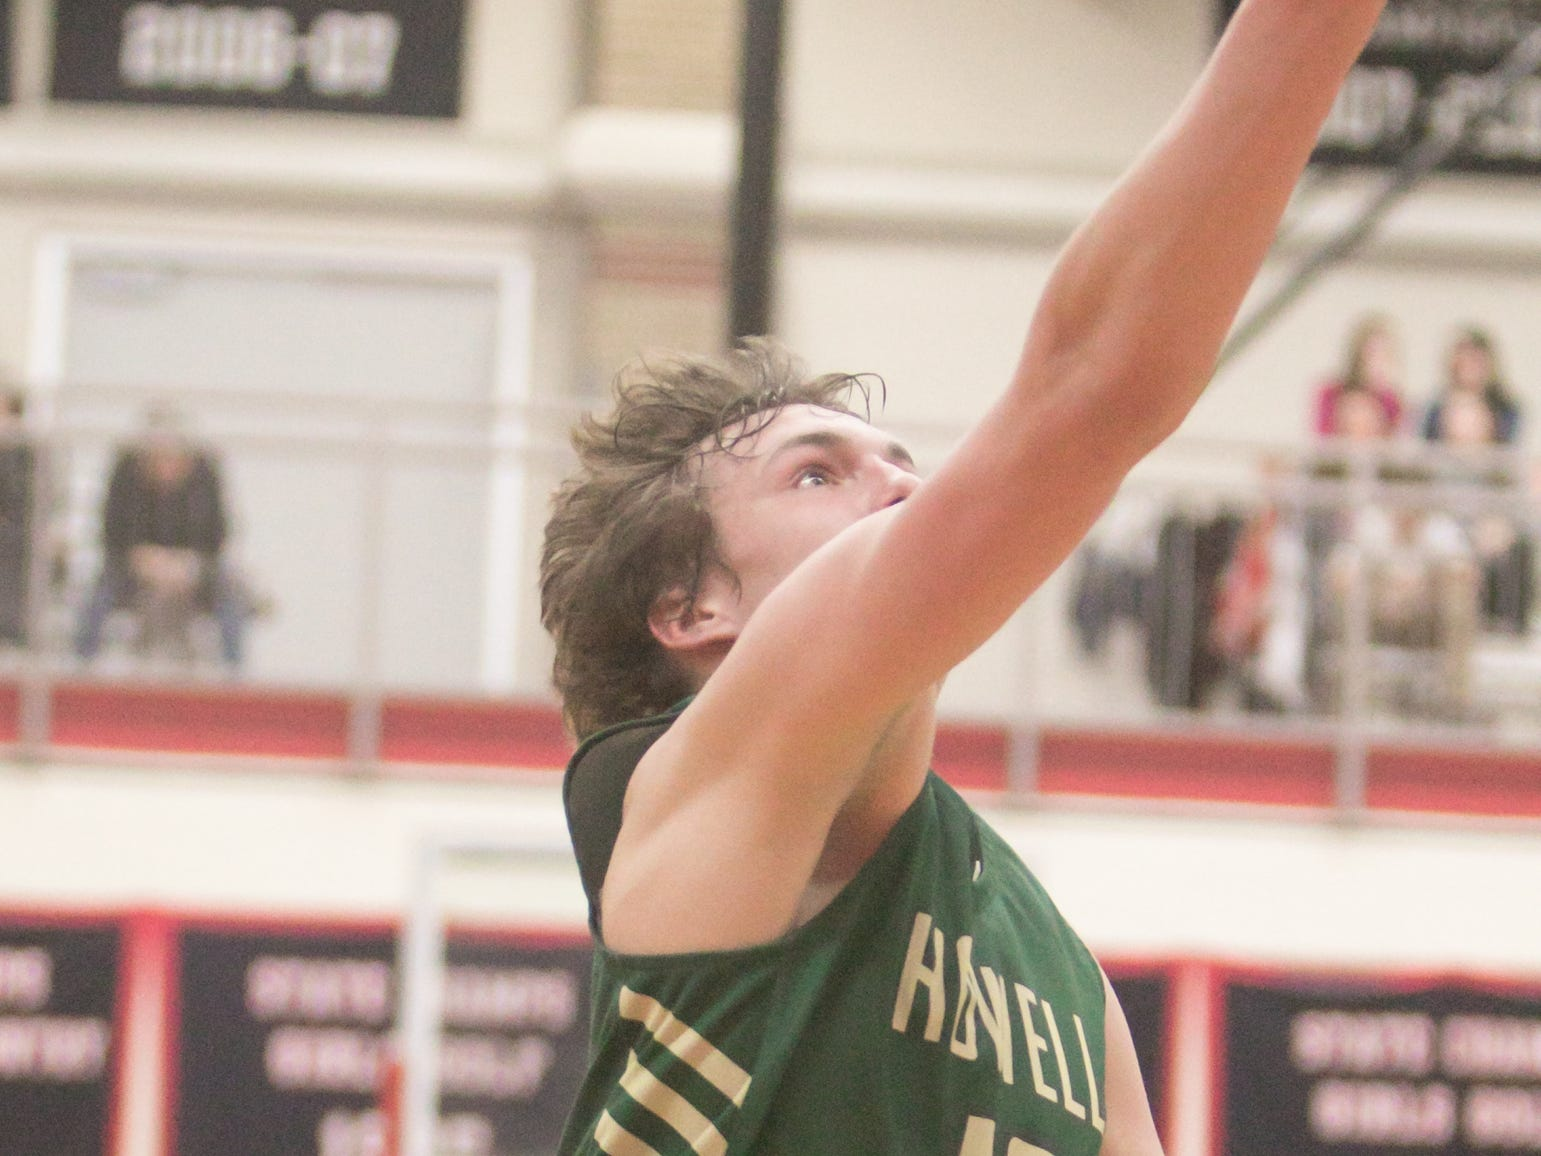 Tony Honkala had a team-high 18 points for Howell in a 57-56 victory over Saginaw in a state basketball quarterfinal at Grand Blanc on Tuesday, March 12, 2019.